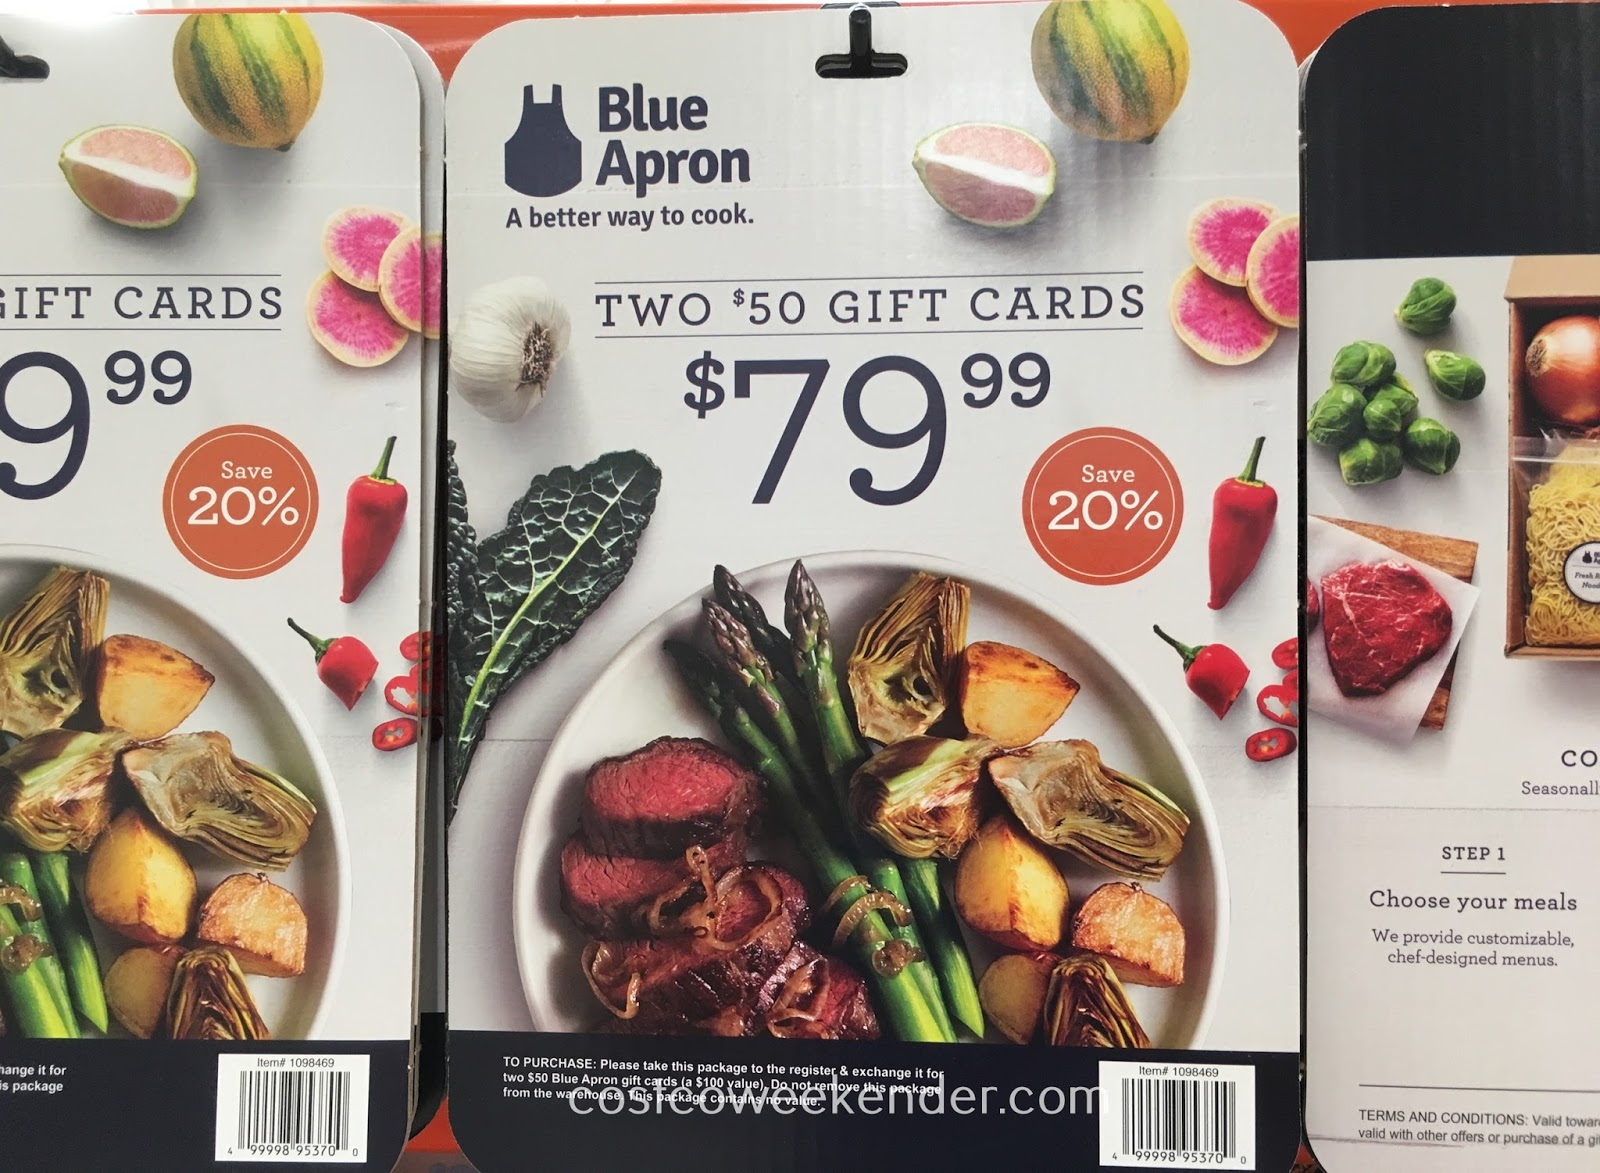 Blue apron as a gift